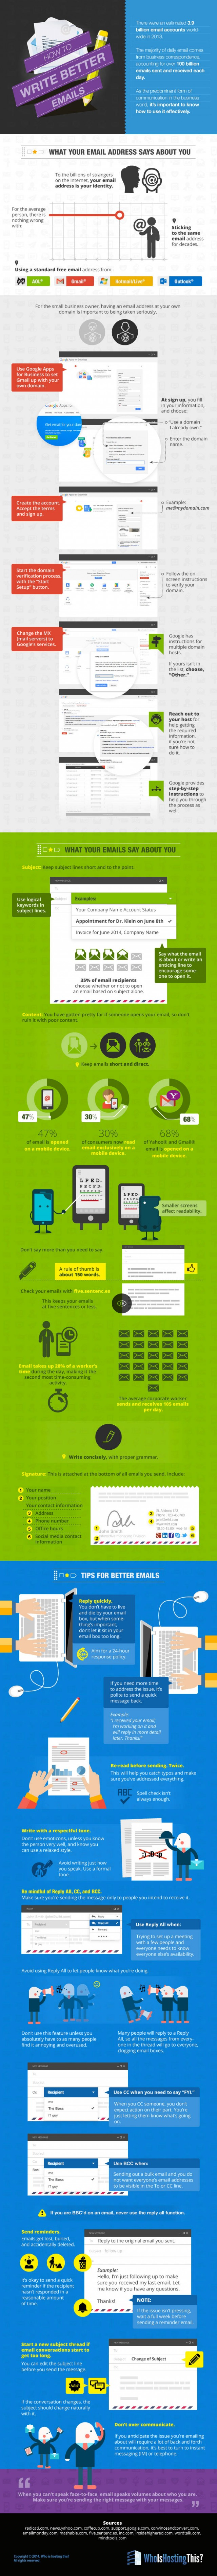 How to Write Better Emails [Infographic] | Daily Infographic